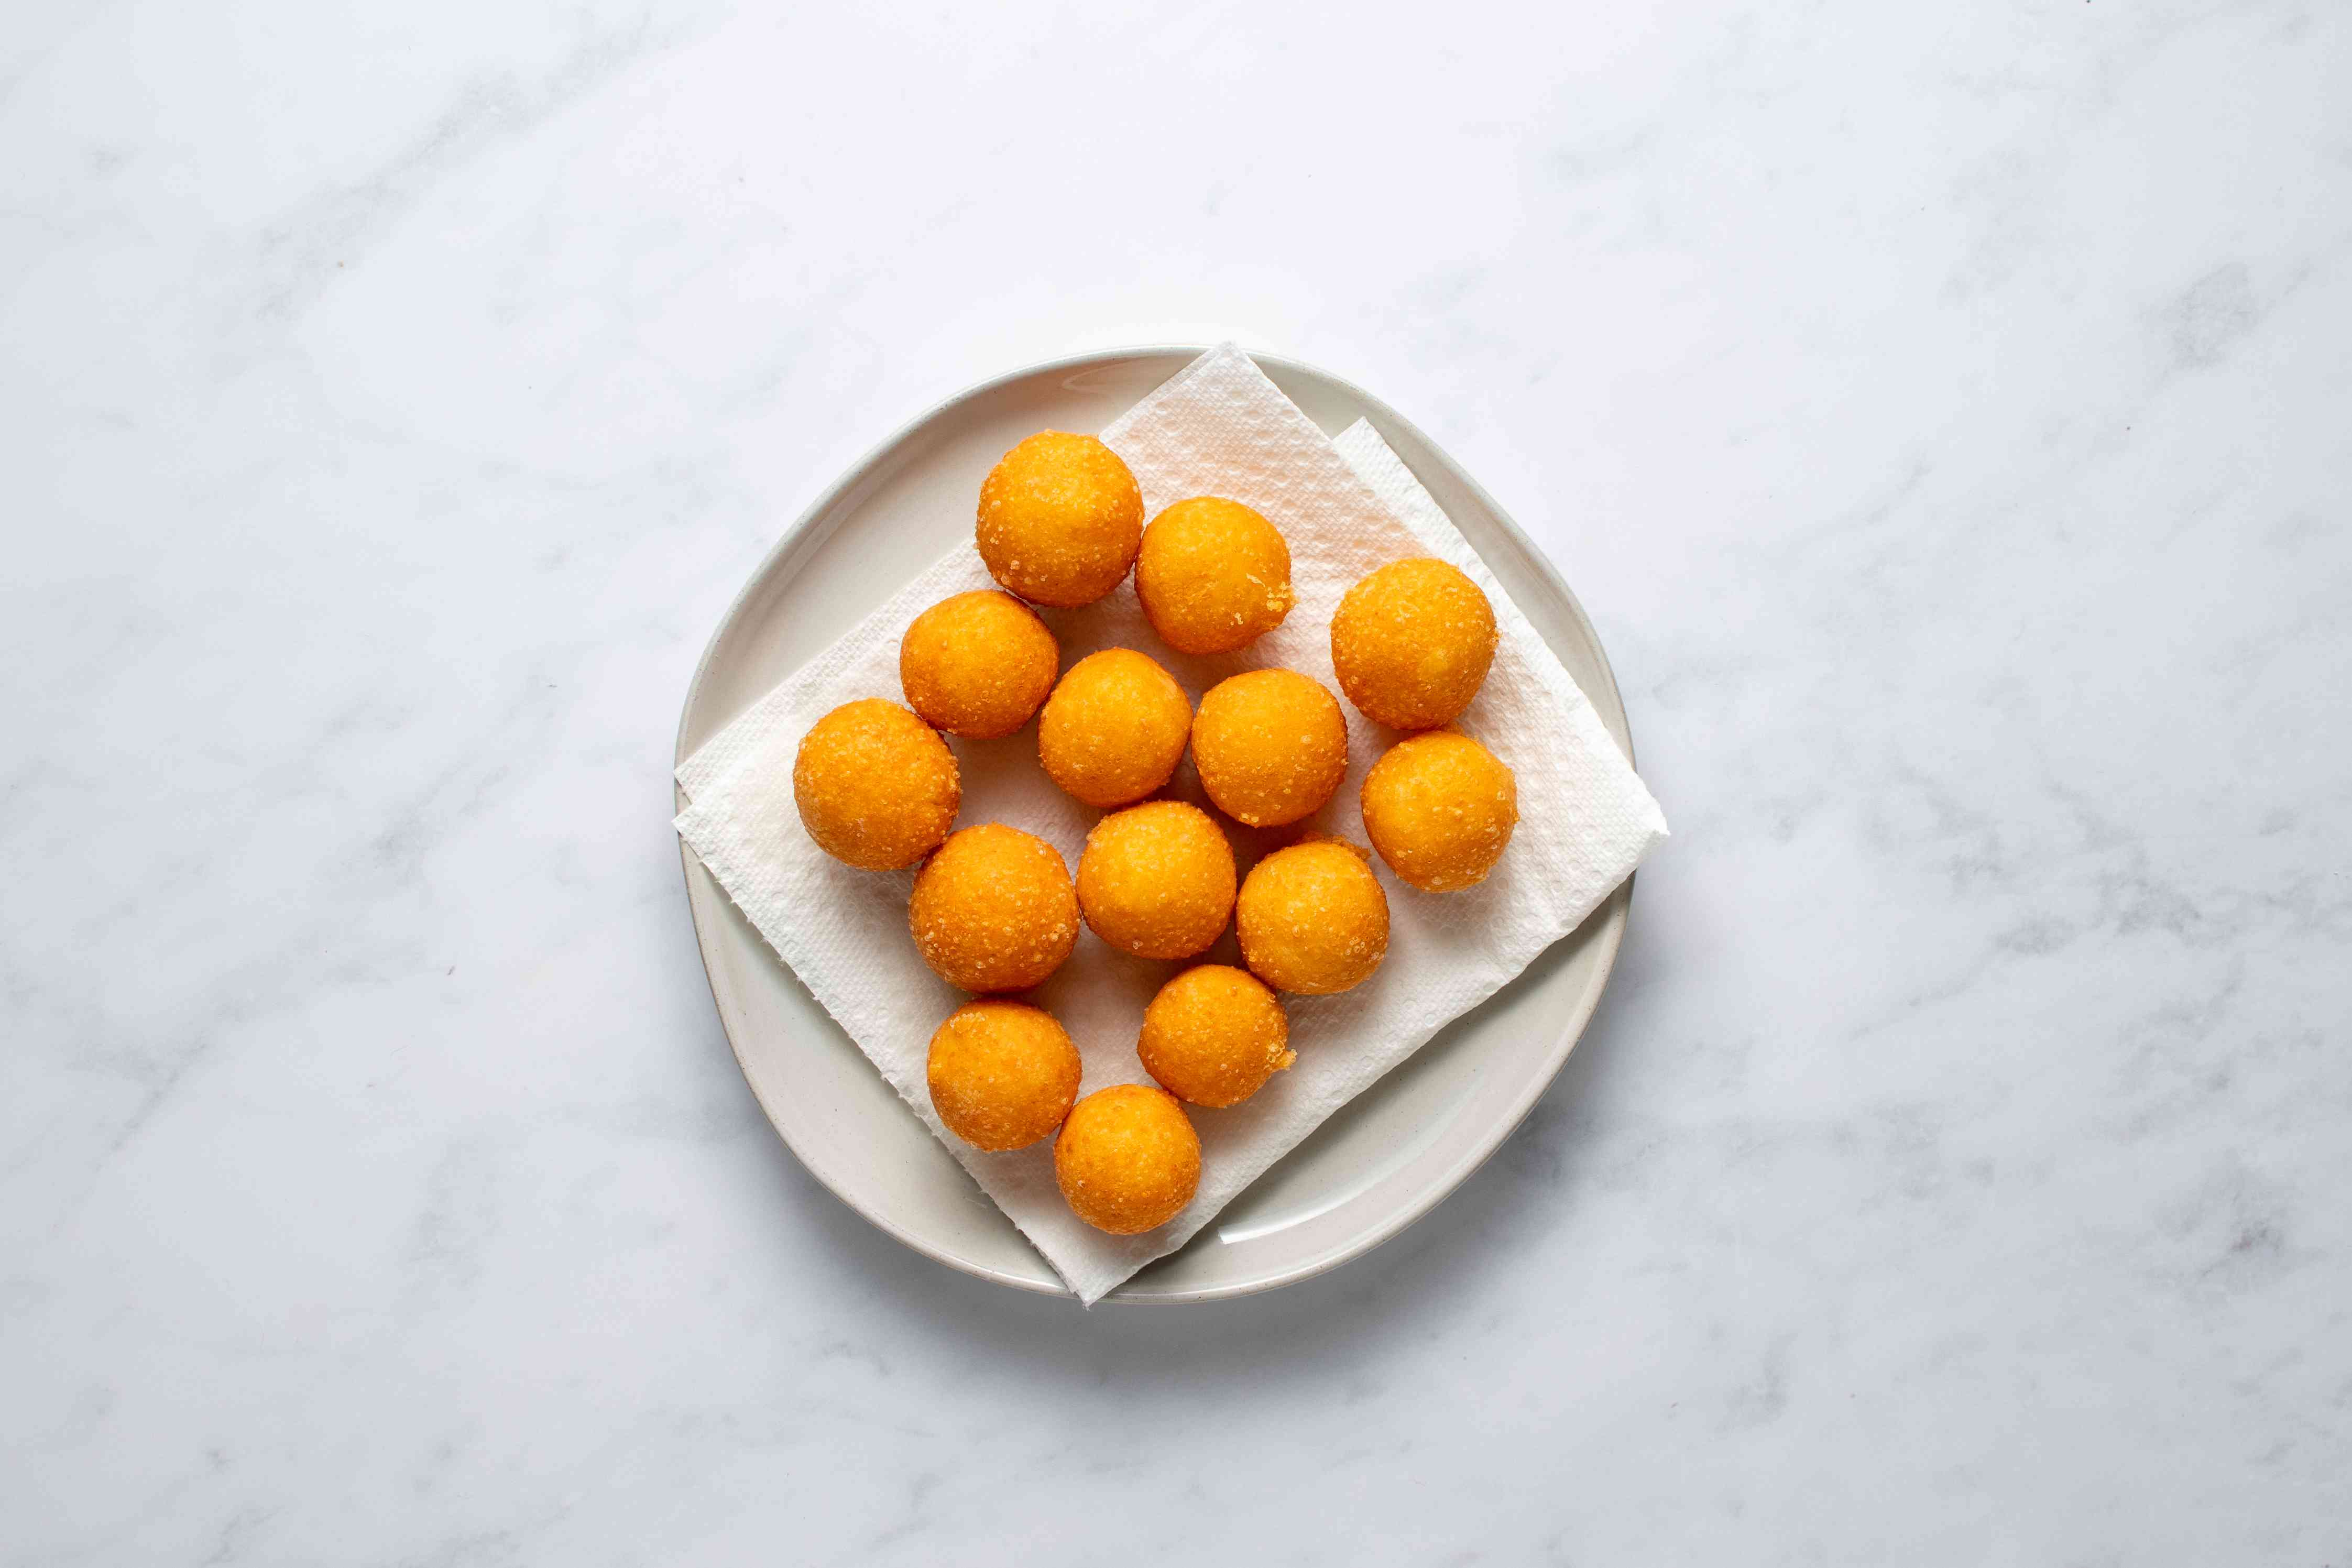 Fried Cheese Balls on a paper towel line platter